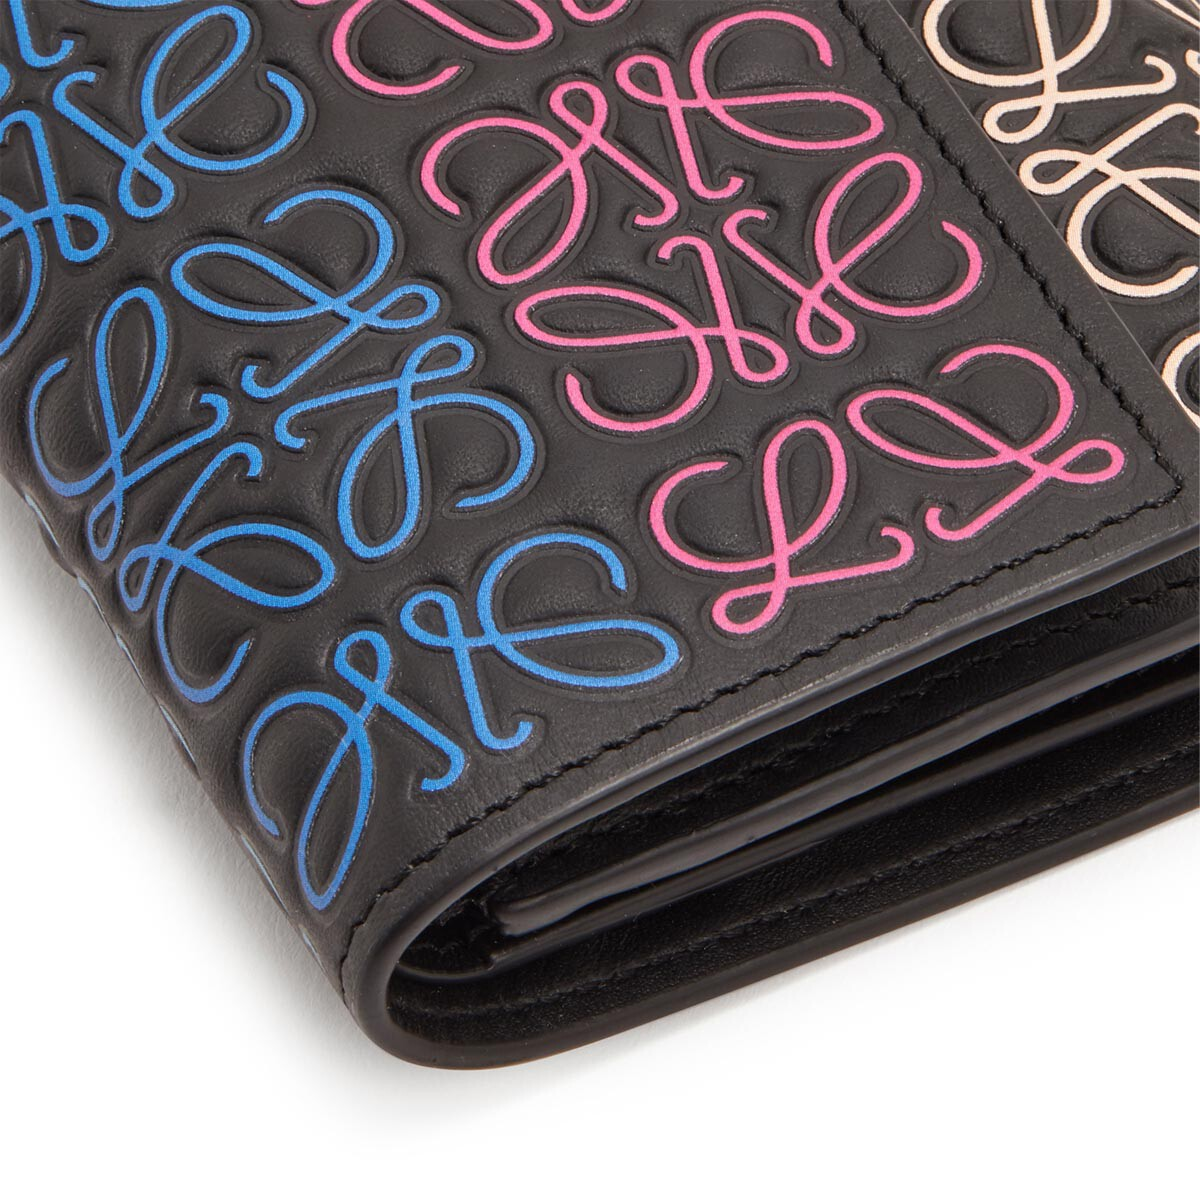 LOEWE Small Vertical Wallet Black/Multicolor front